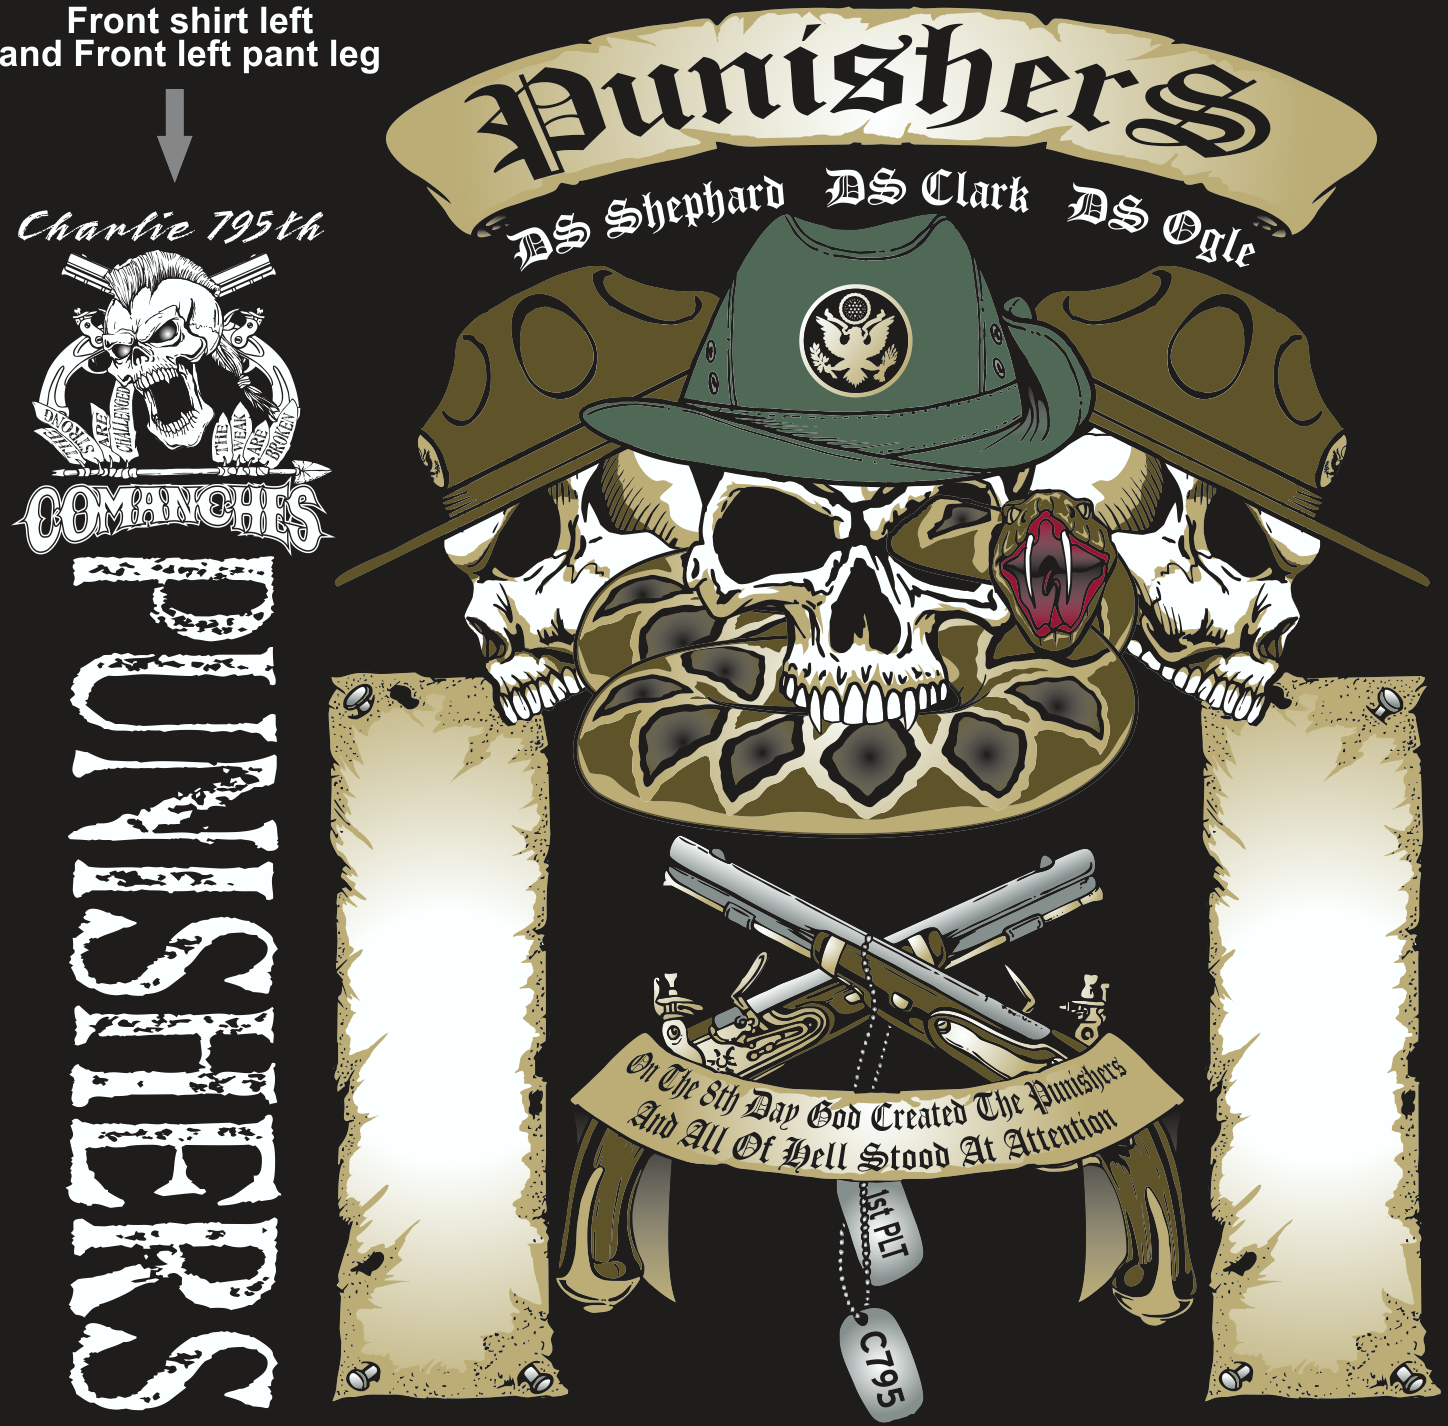 CHARLIE 795 PUNISHERS GRADUATING DAY 1-21-2016 digital